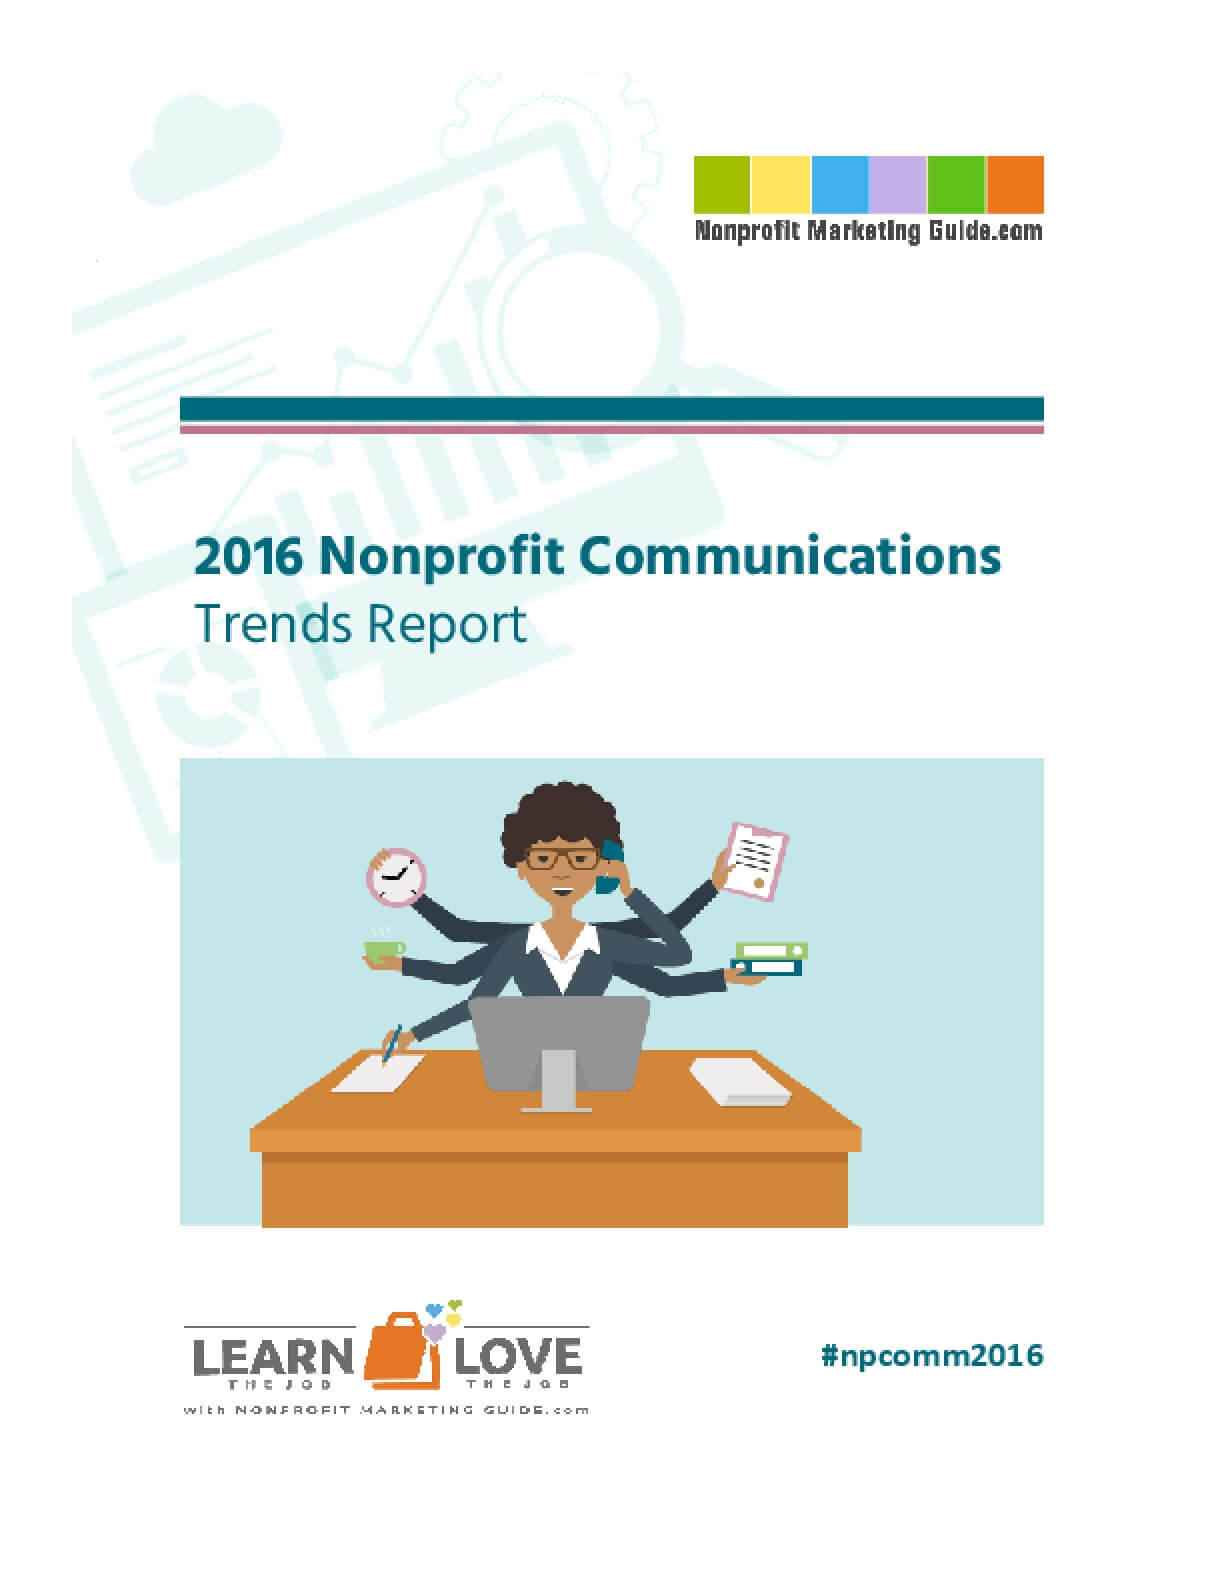 2016 Nonprofit Communications Trends Report